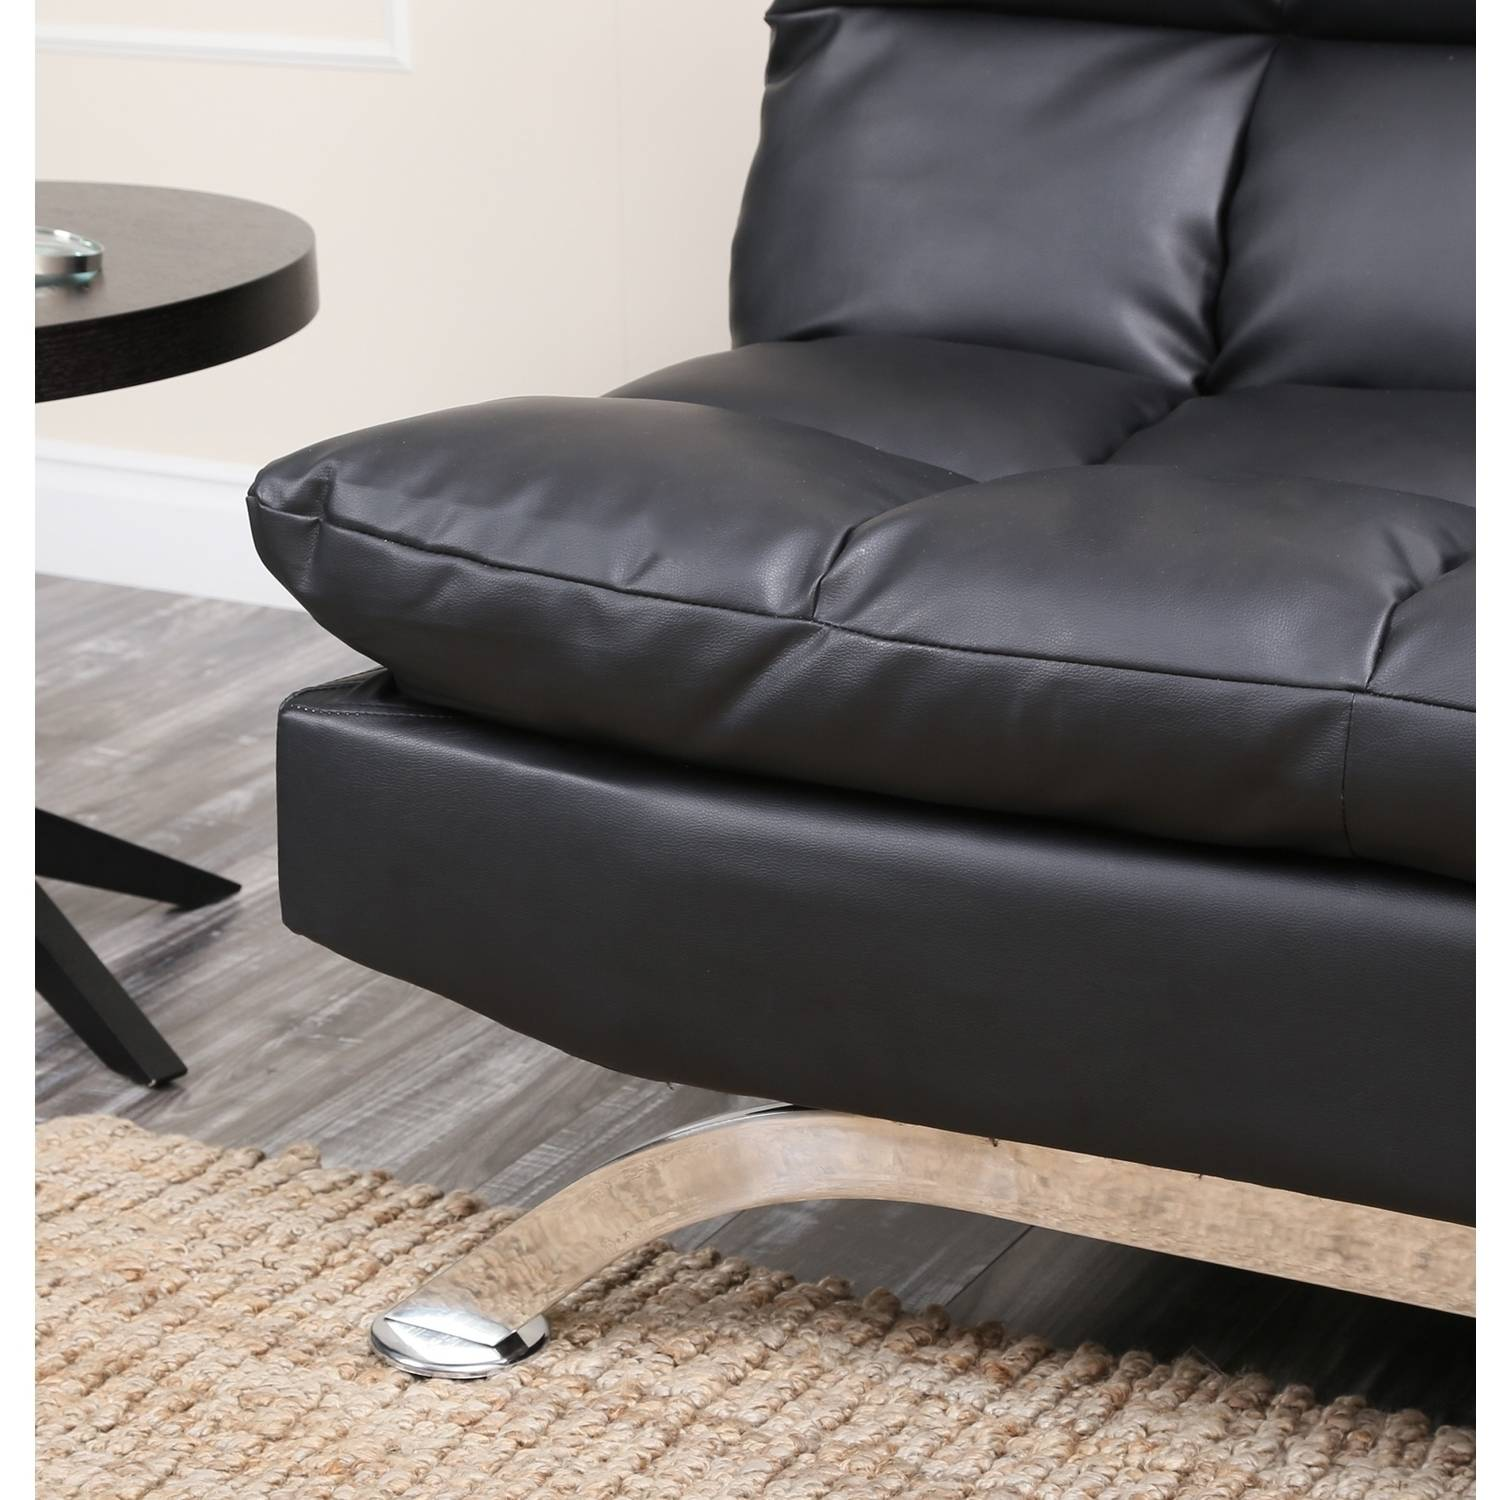 luxury lounger sofa bed living room